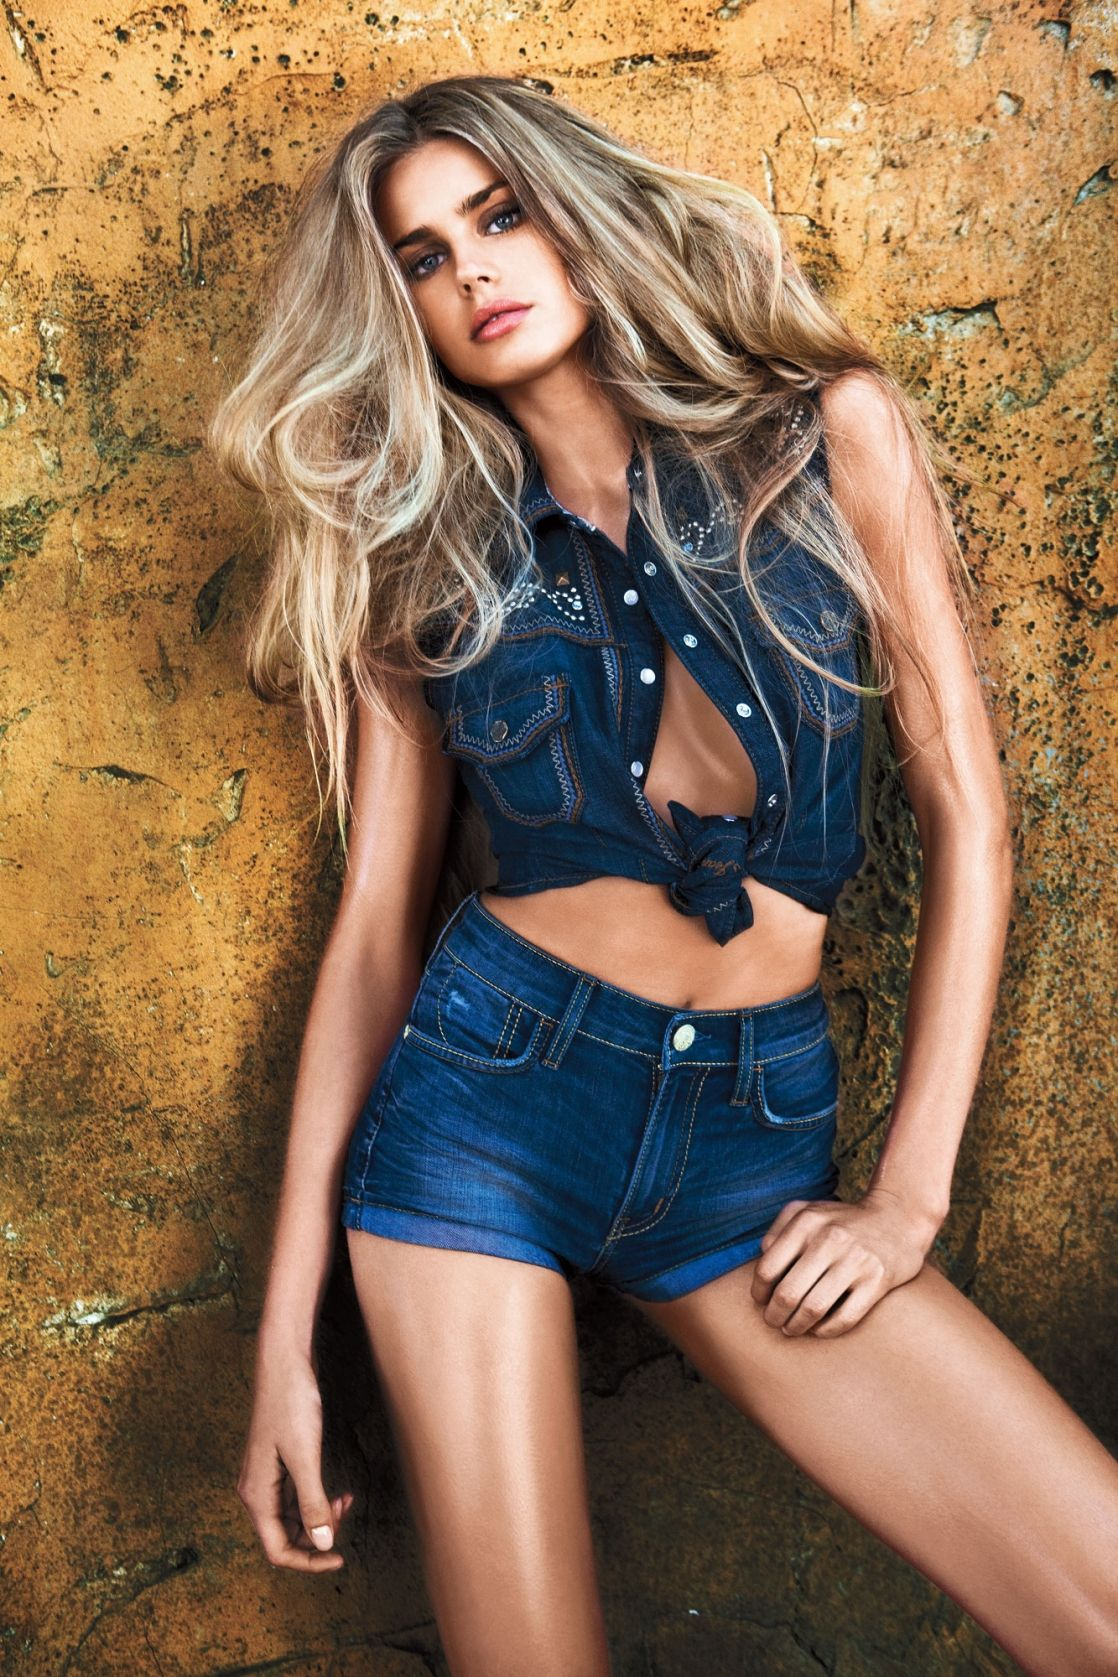 Vanessa Hessler For Guess Large 1118x1677 Http Ilarge Lisimg Com Image 1986384 1118full Vanessa Hessler Jpg Denim Fashion Guess Jeans Model